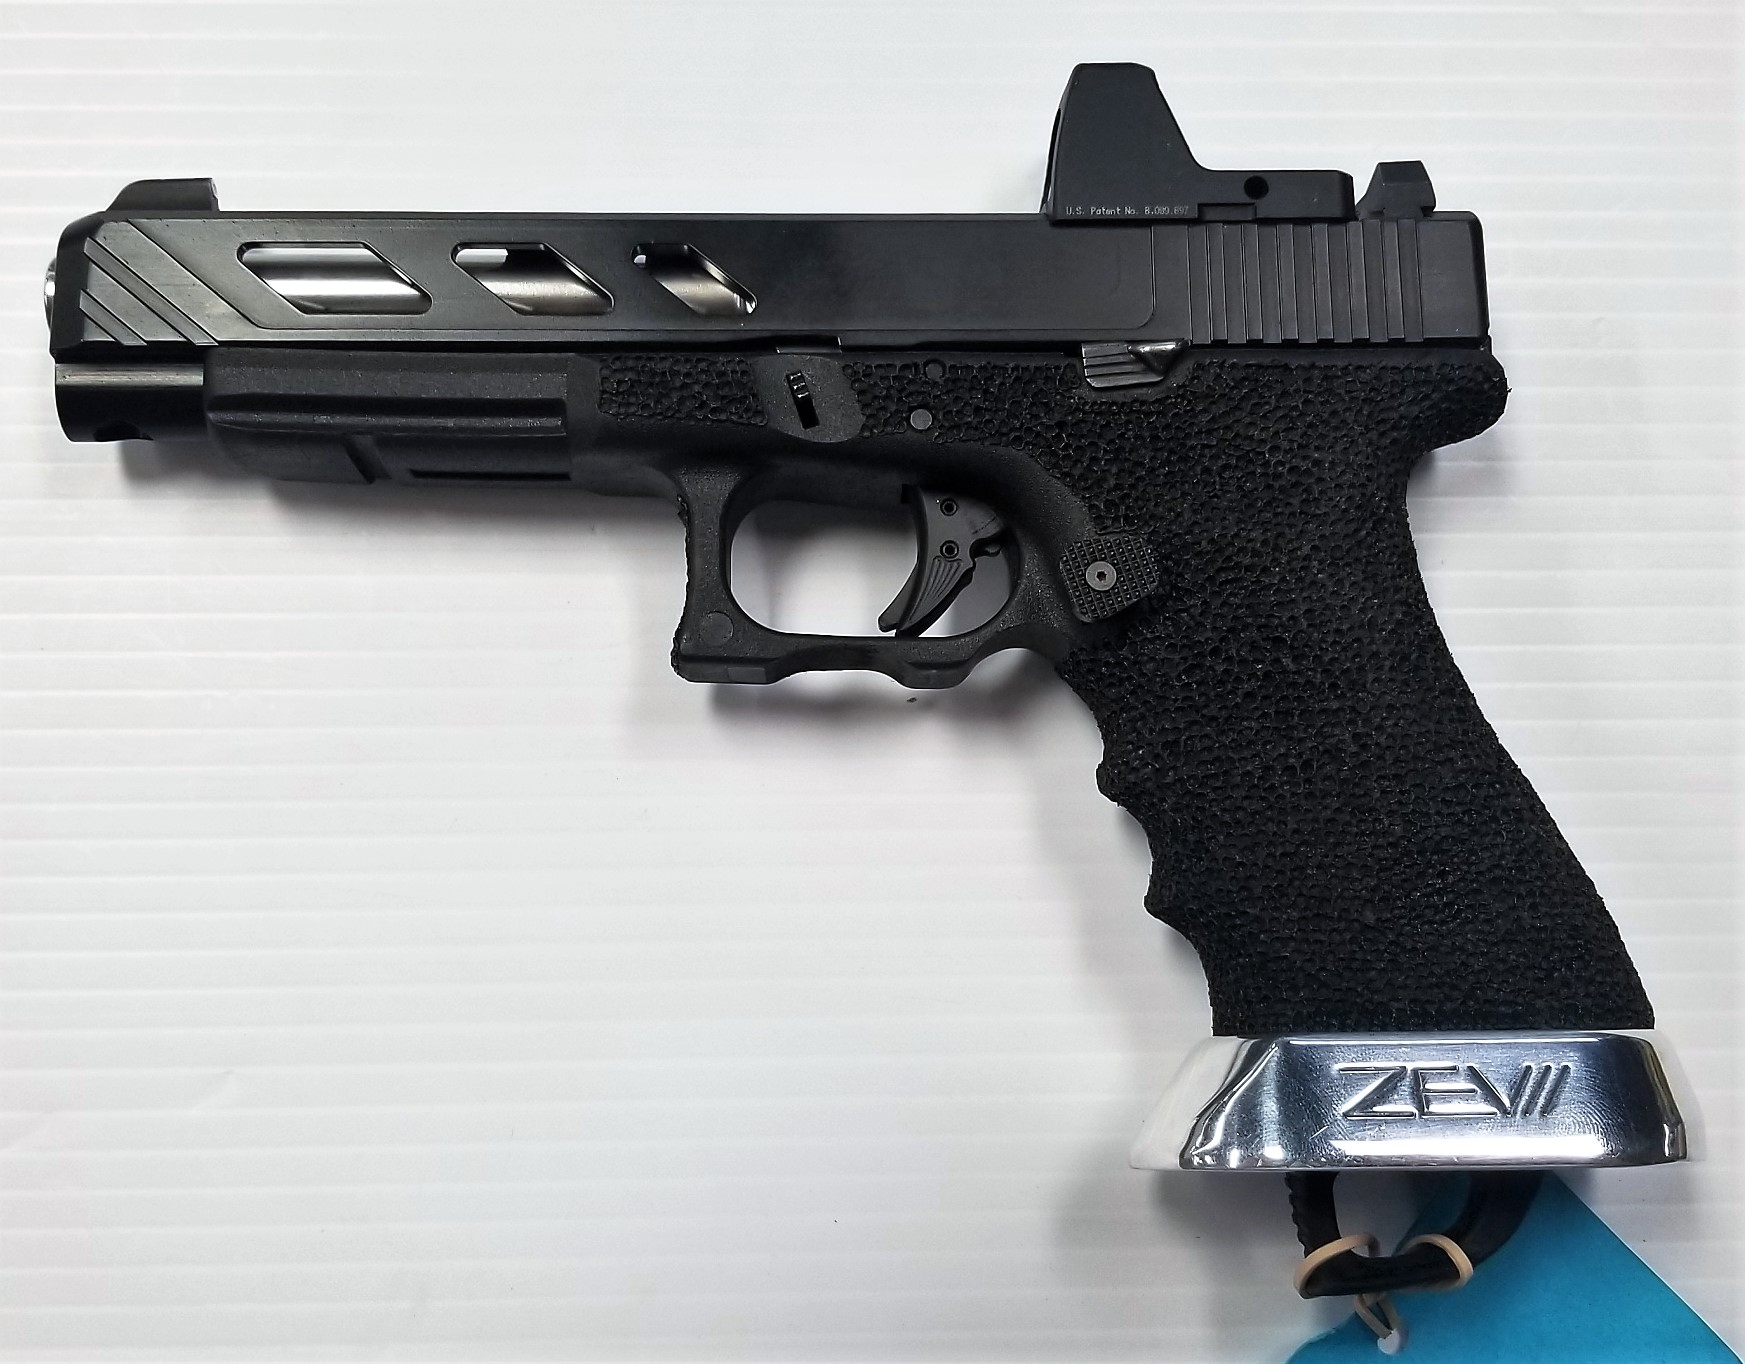 Glock Gen 3 Zev Tech Custom with RMR